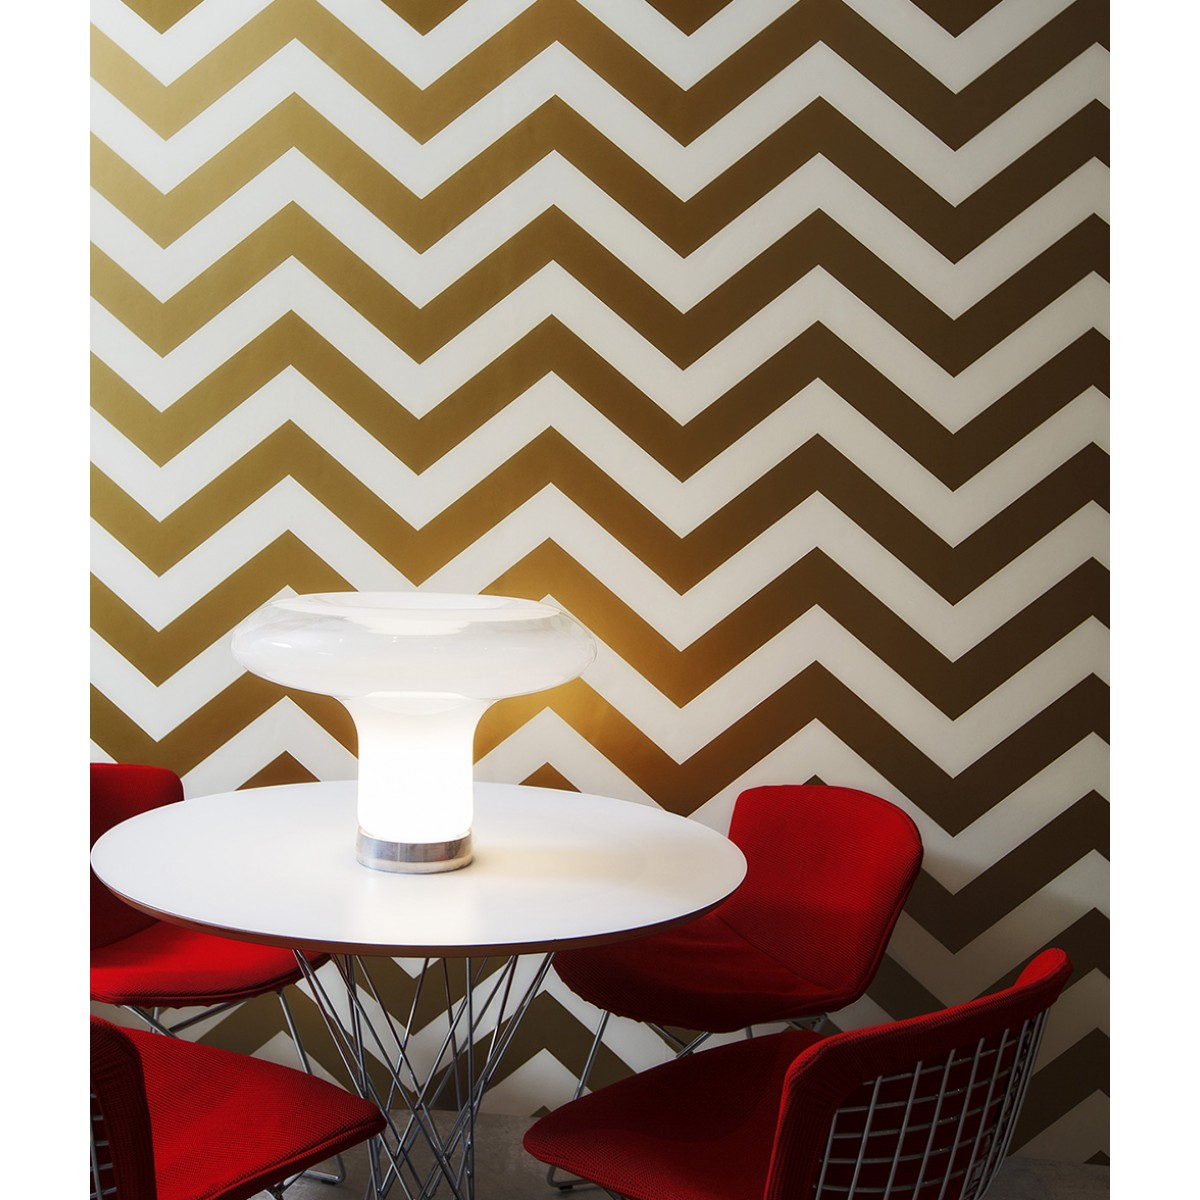 chic ZEE Gold tempaper wallpaper in chevron design for inspiring wall decor ideas